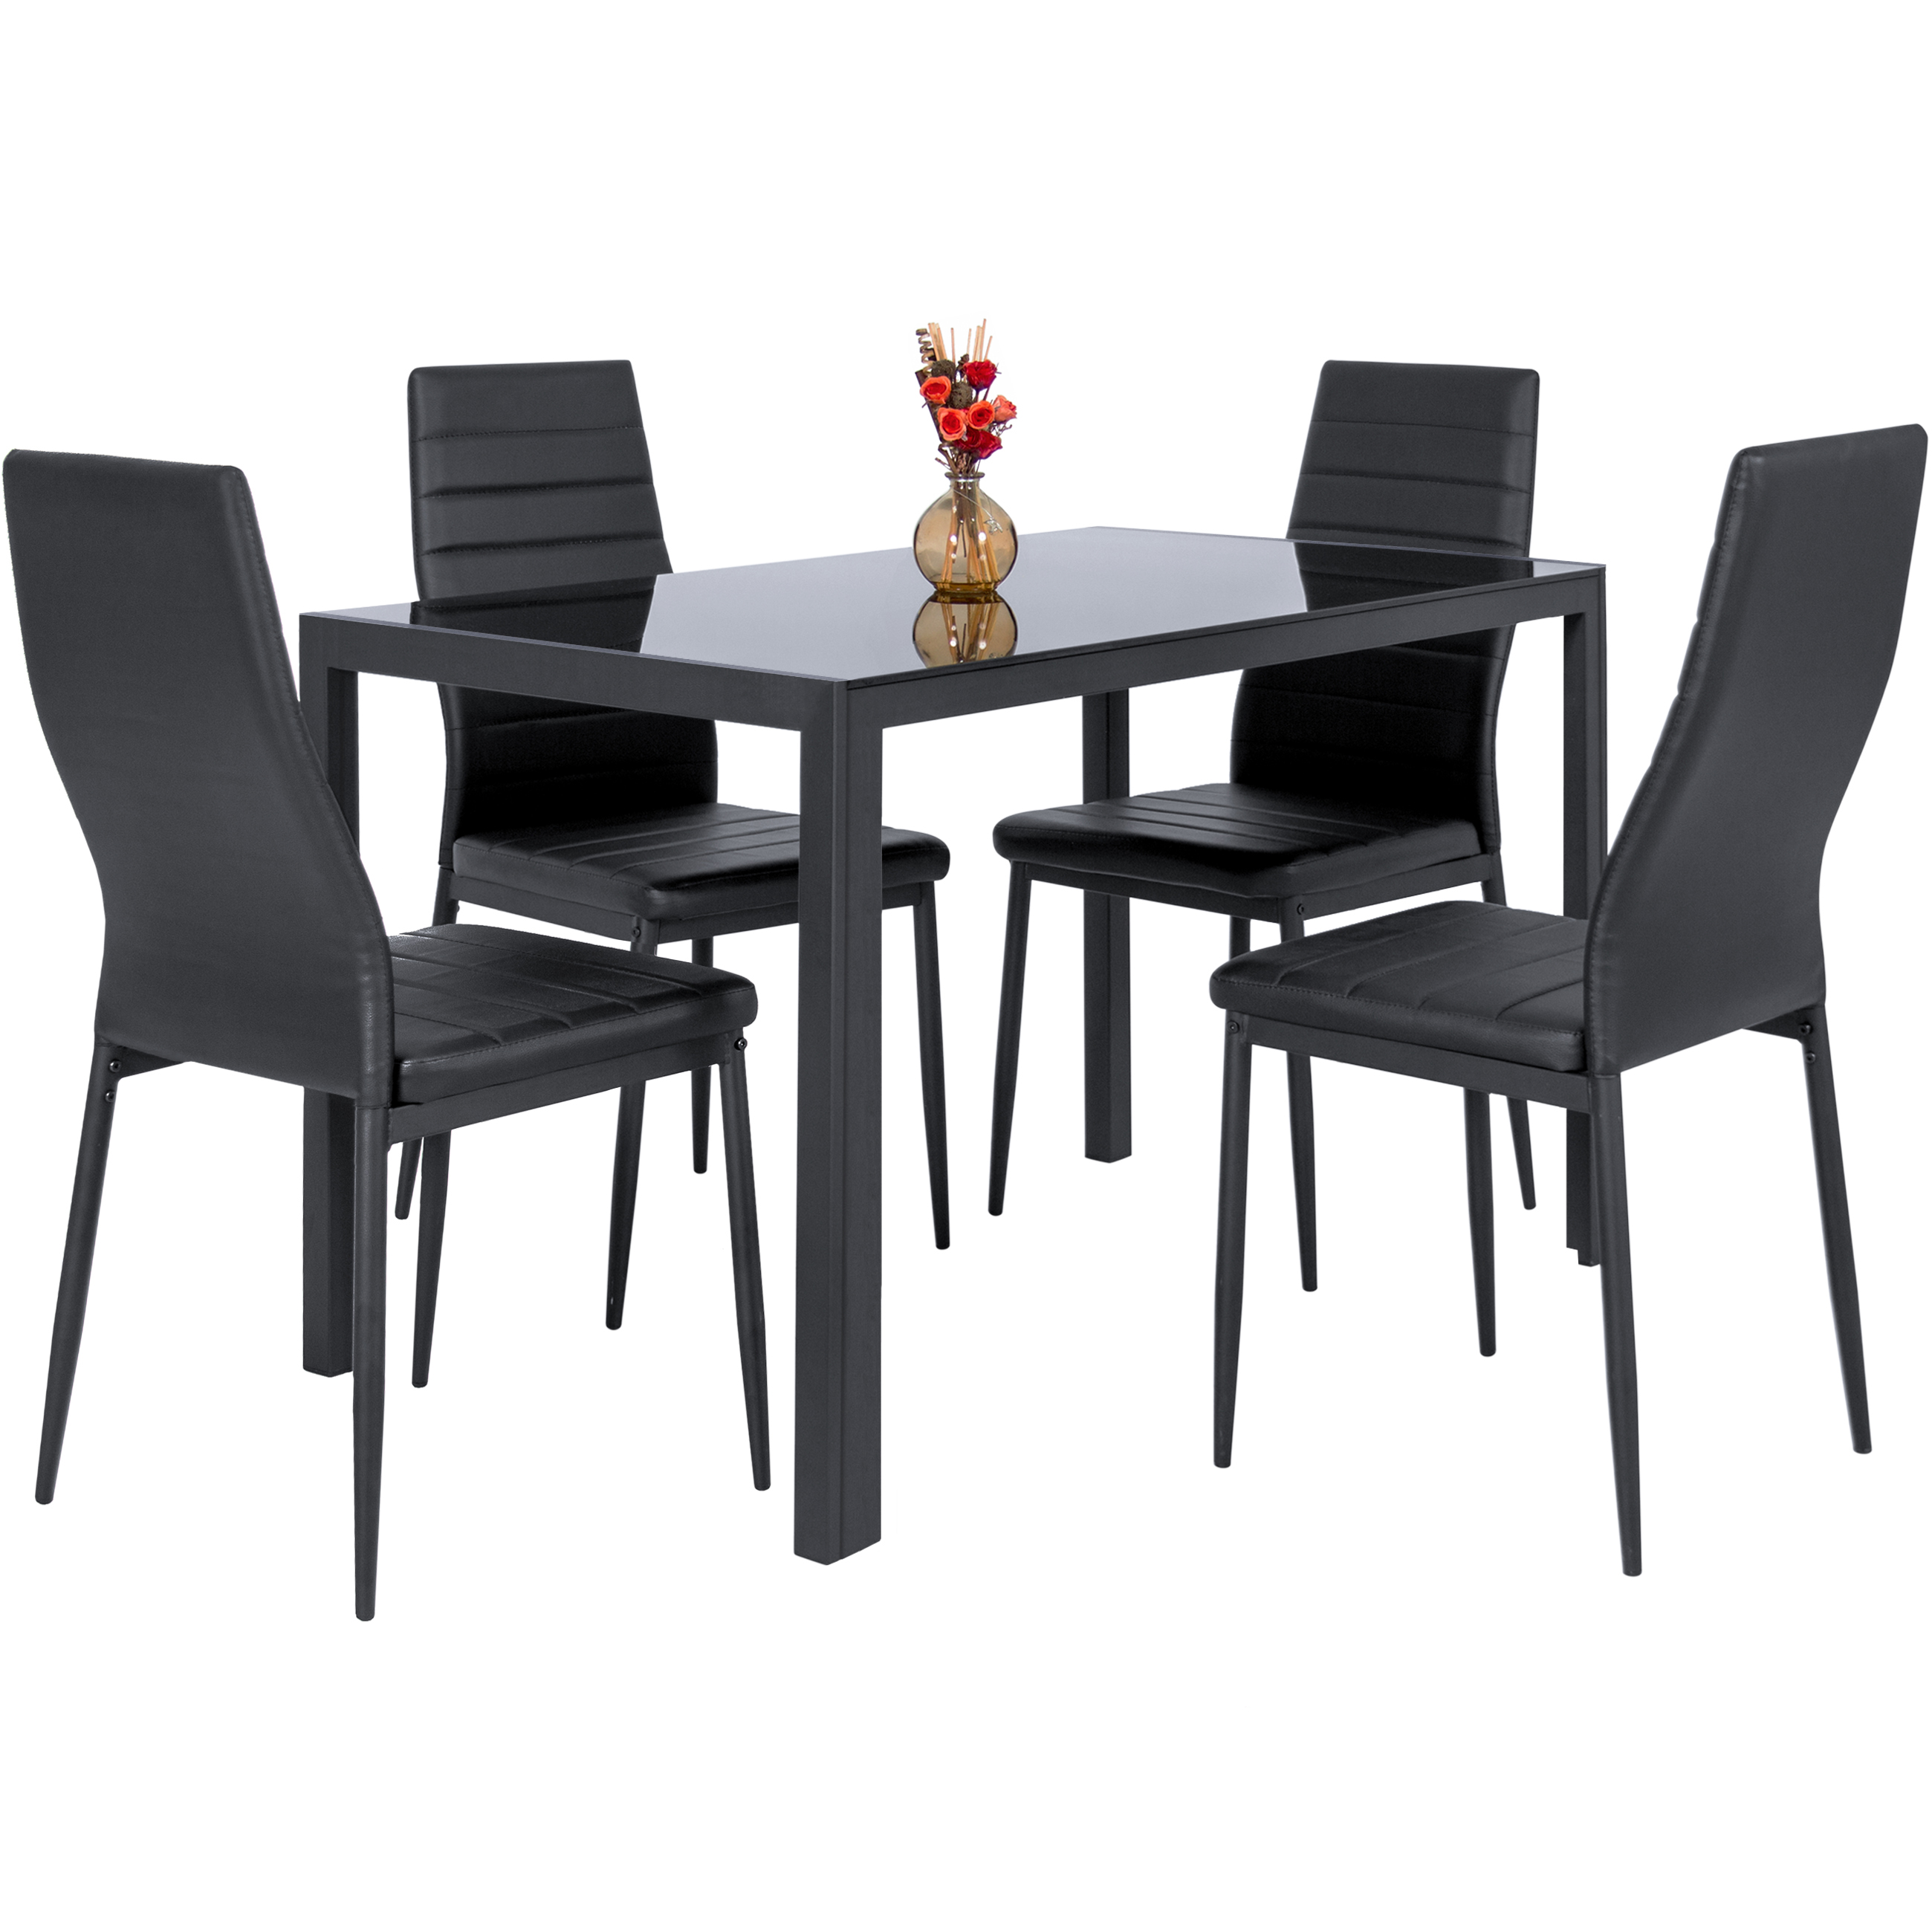 Best Choice Products 5 Piece Kitchen Dining Table Set W  Glass Top And 4 Leather Chairs Dinette Black by Best Choice Products